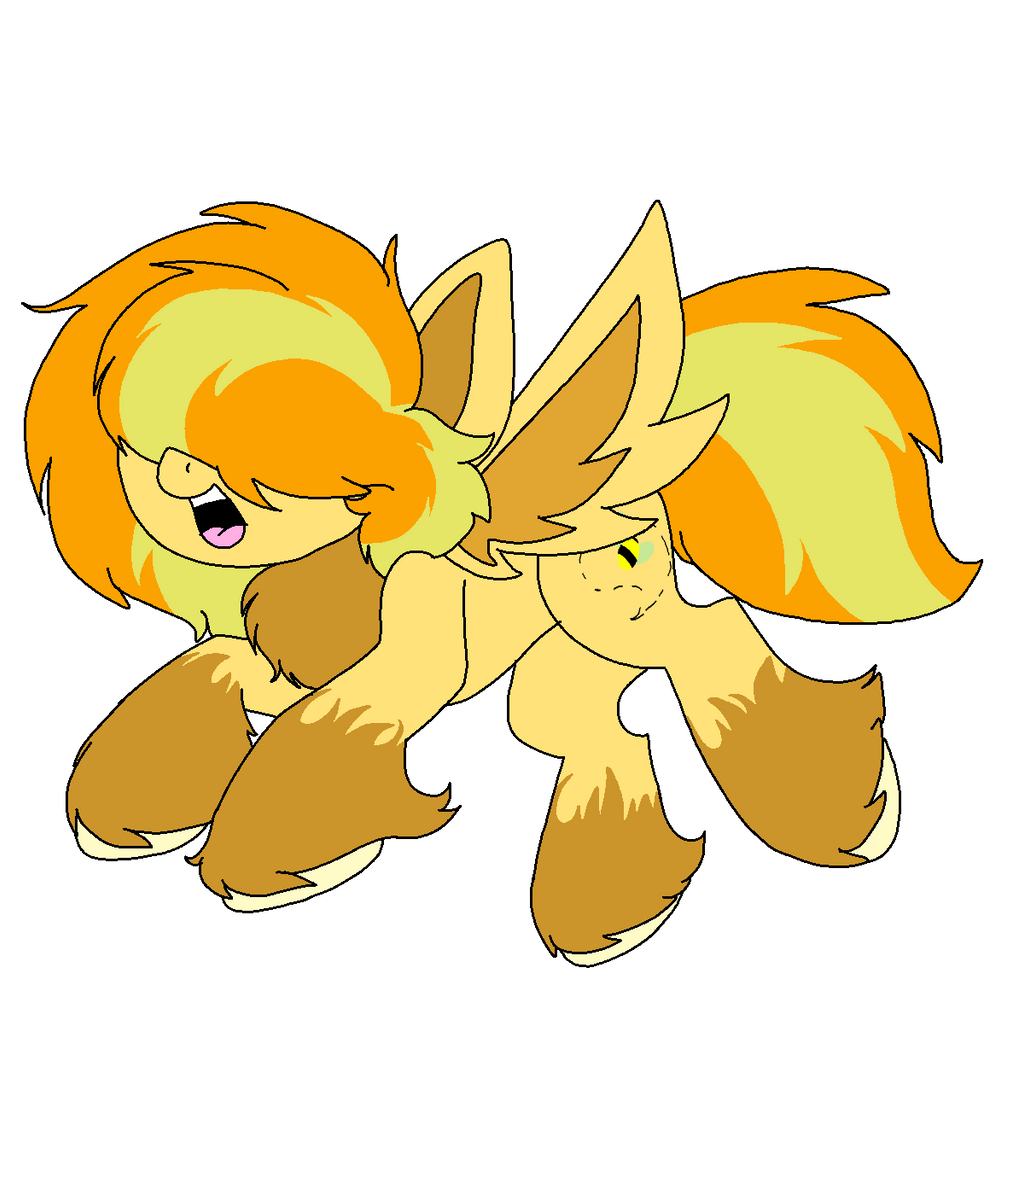 Bumble Shine (With Speedpaint!) by SpaazleDazzle